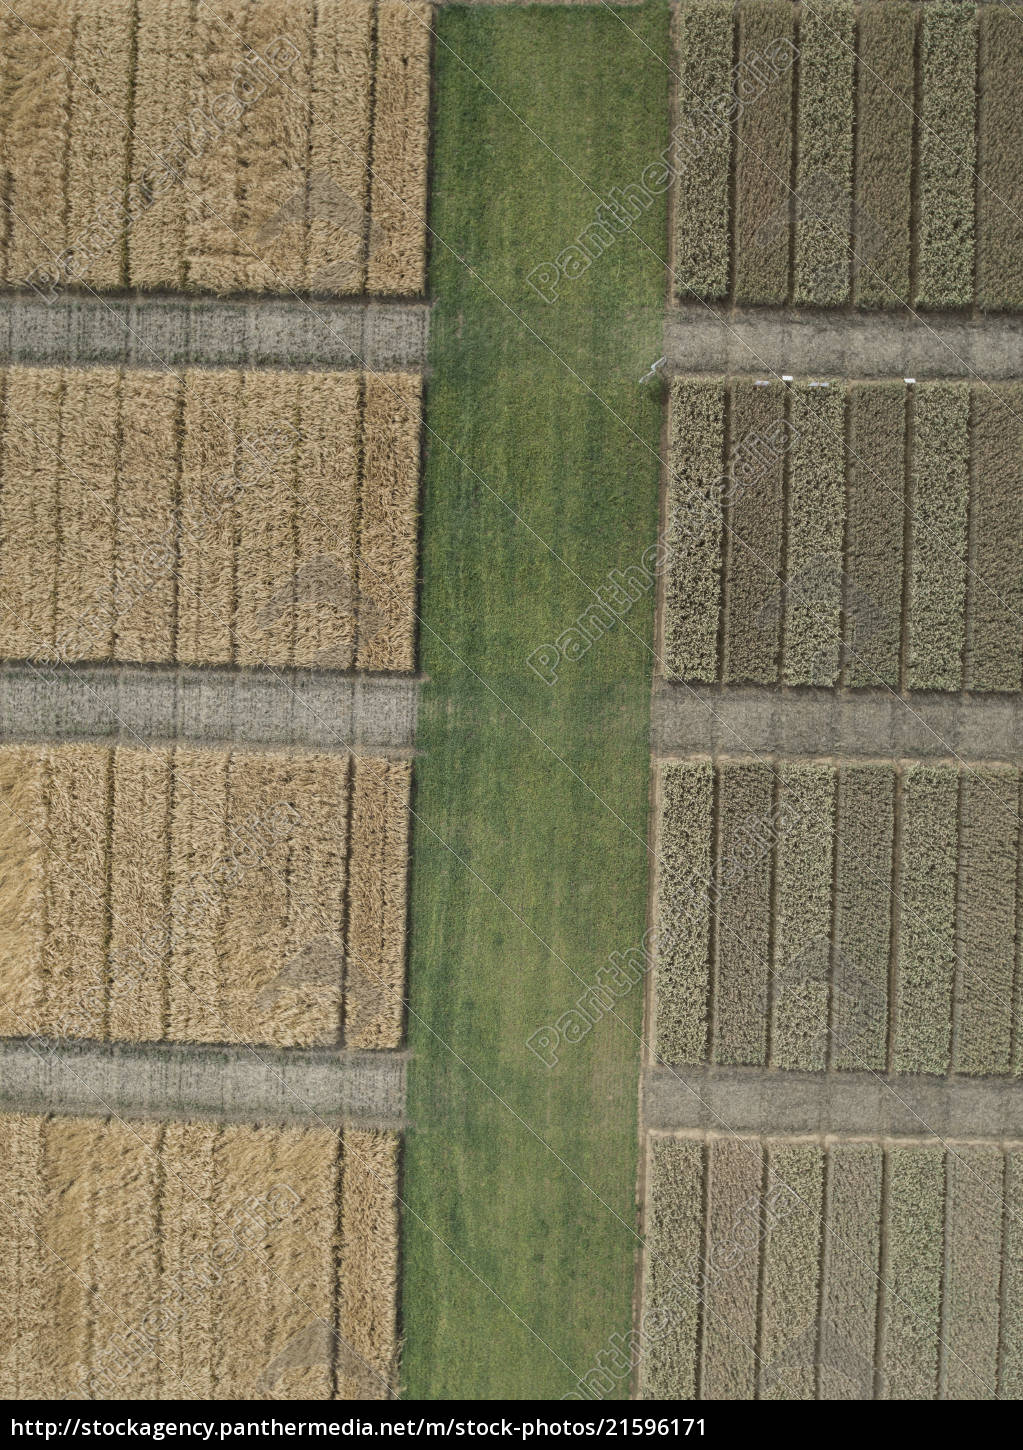 full, frame, aerial, view, of, crops - 21596171